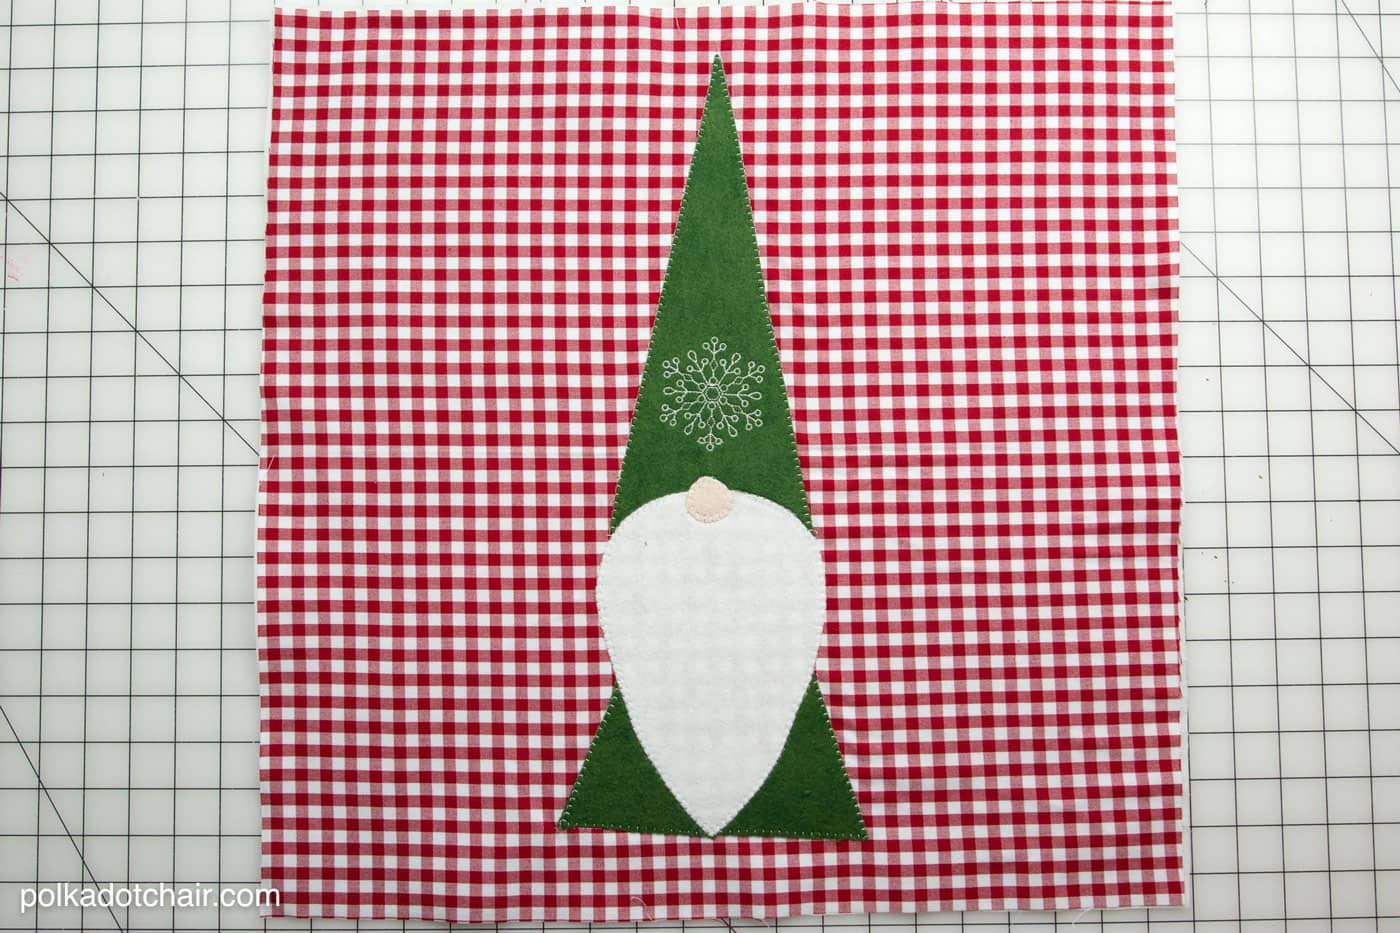 Tomte Christmas Gnome Pillow Pattern The Polka Dot Chair